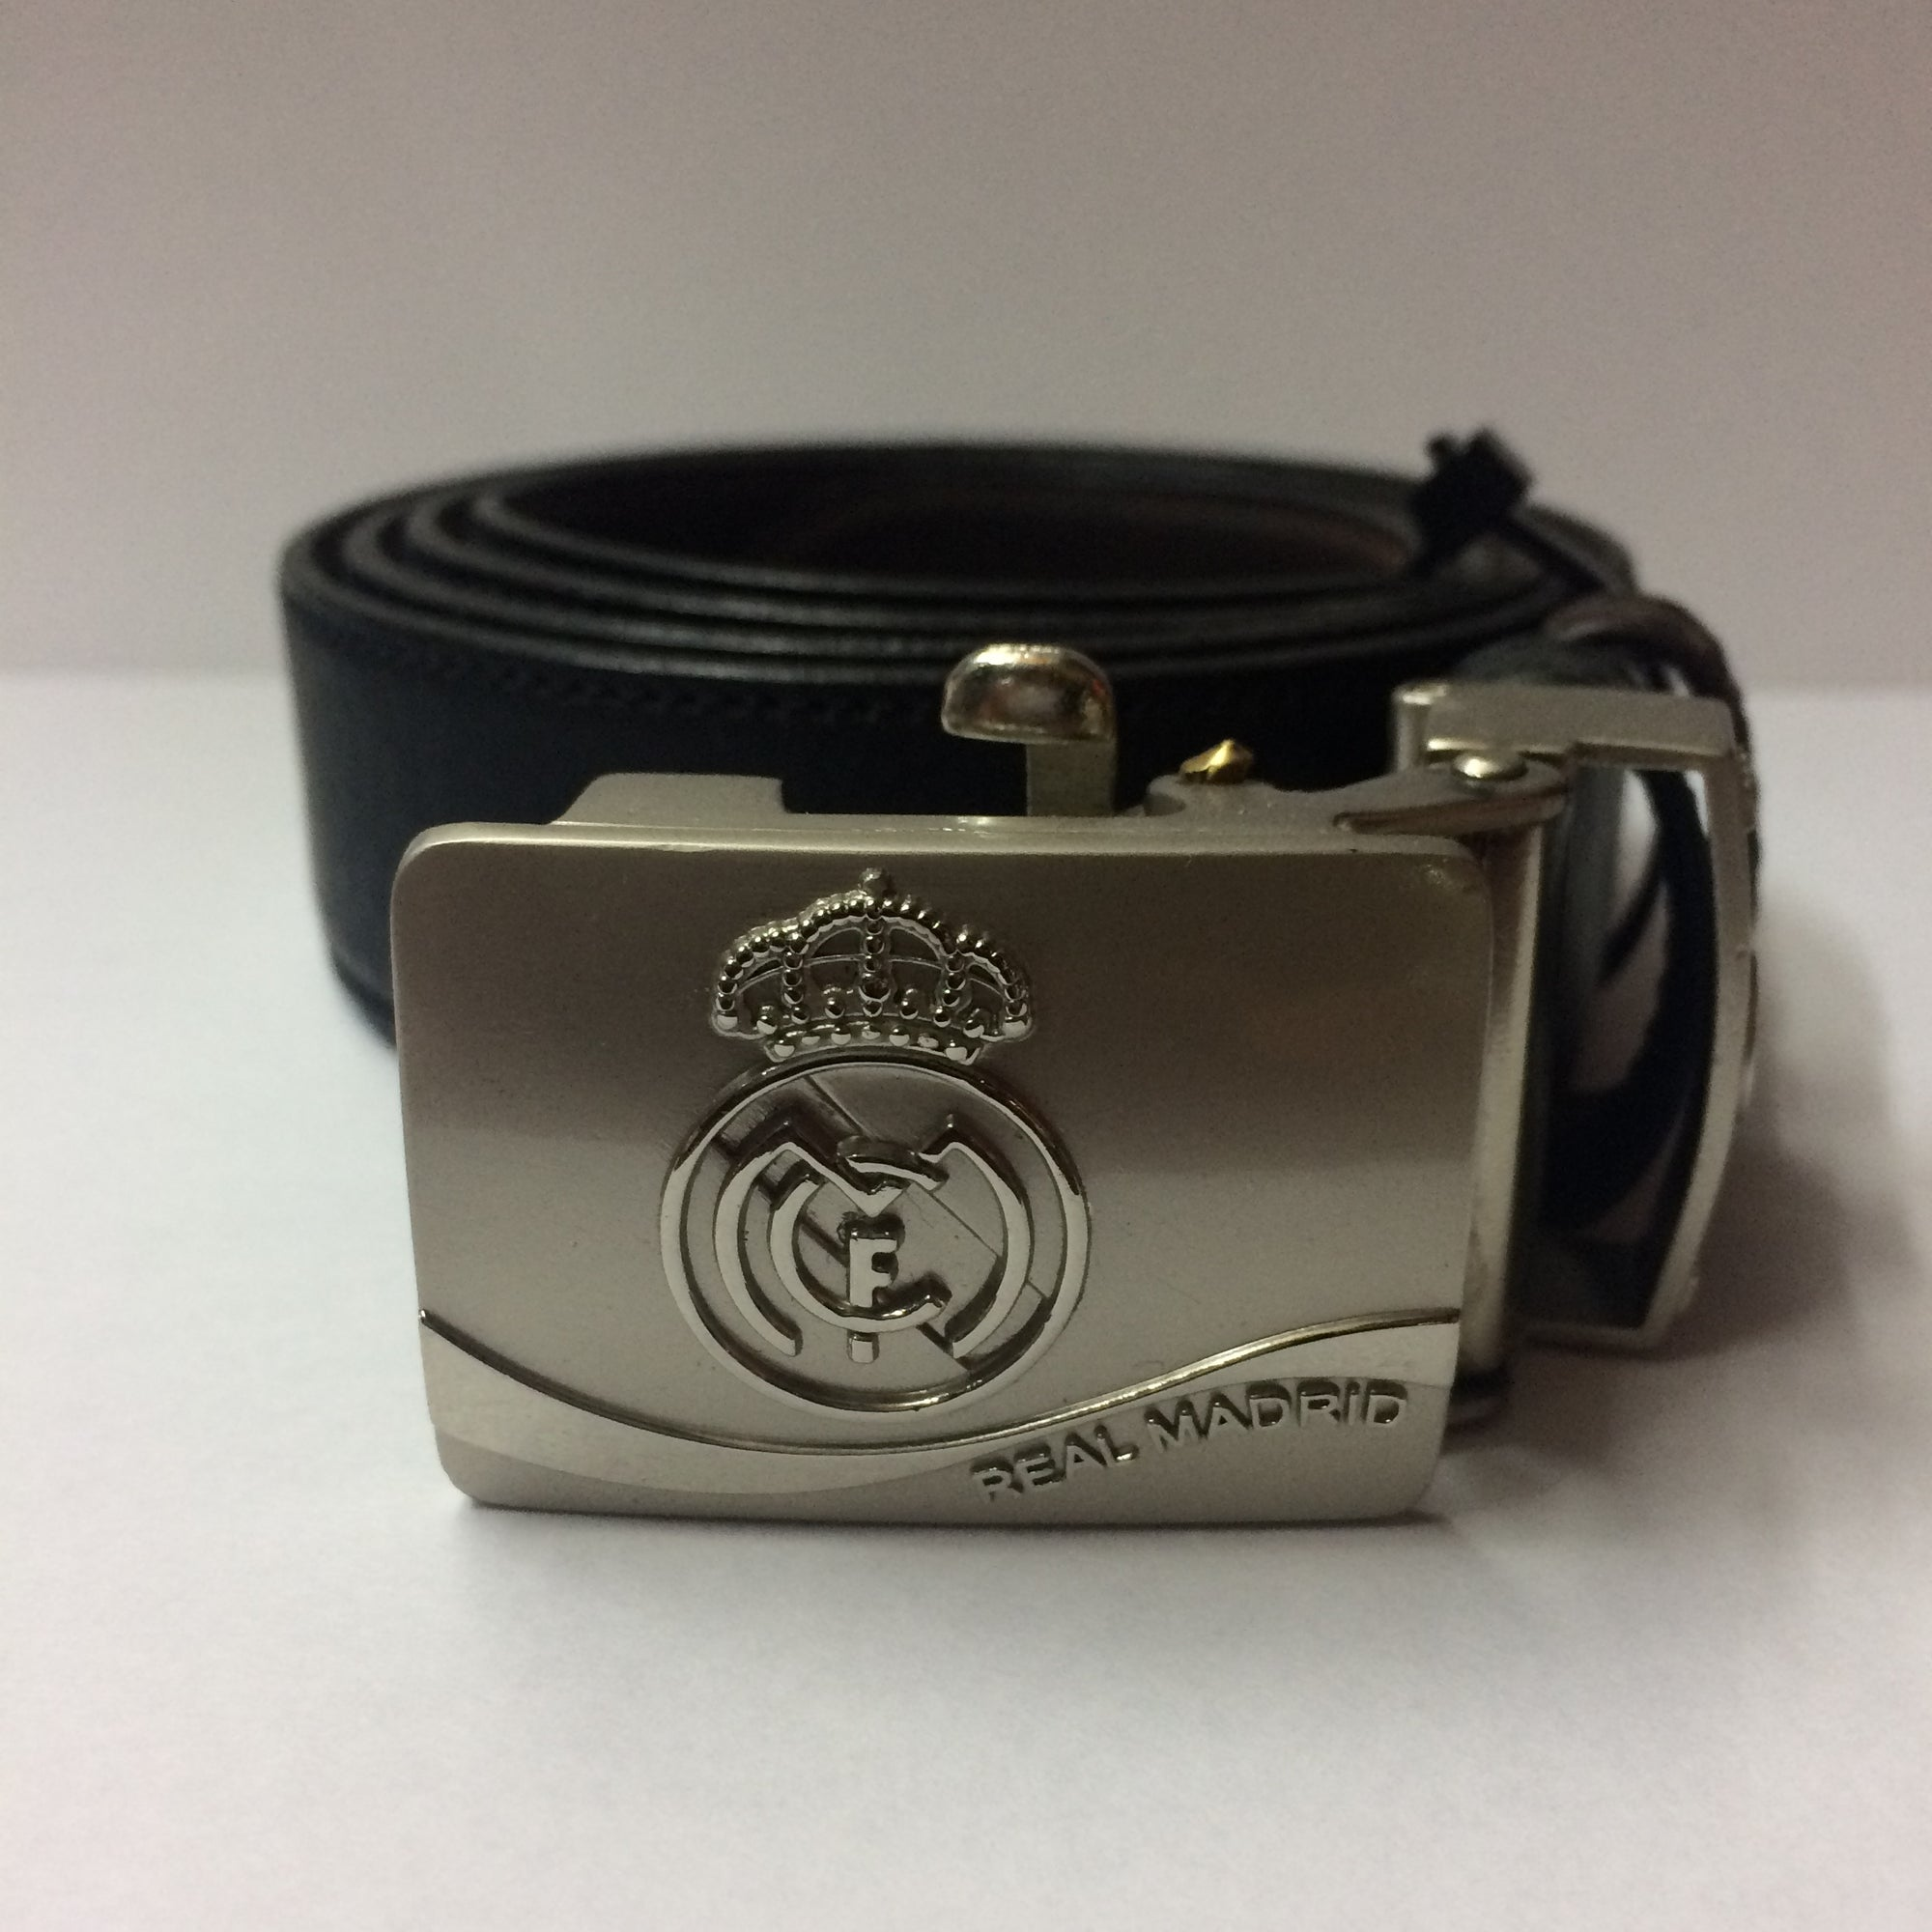 Real Madrid Men's Dress Belt